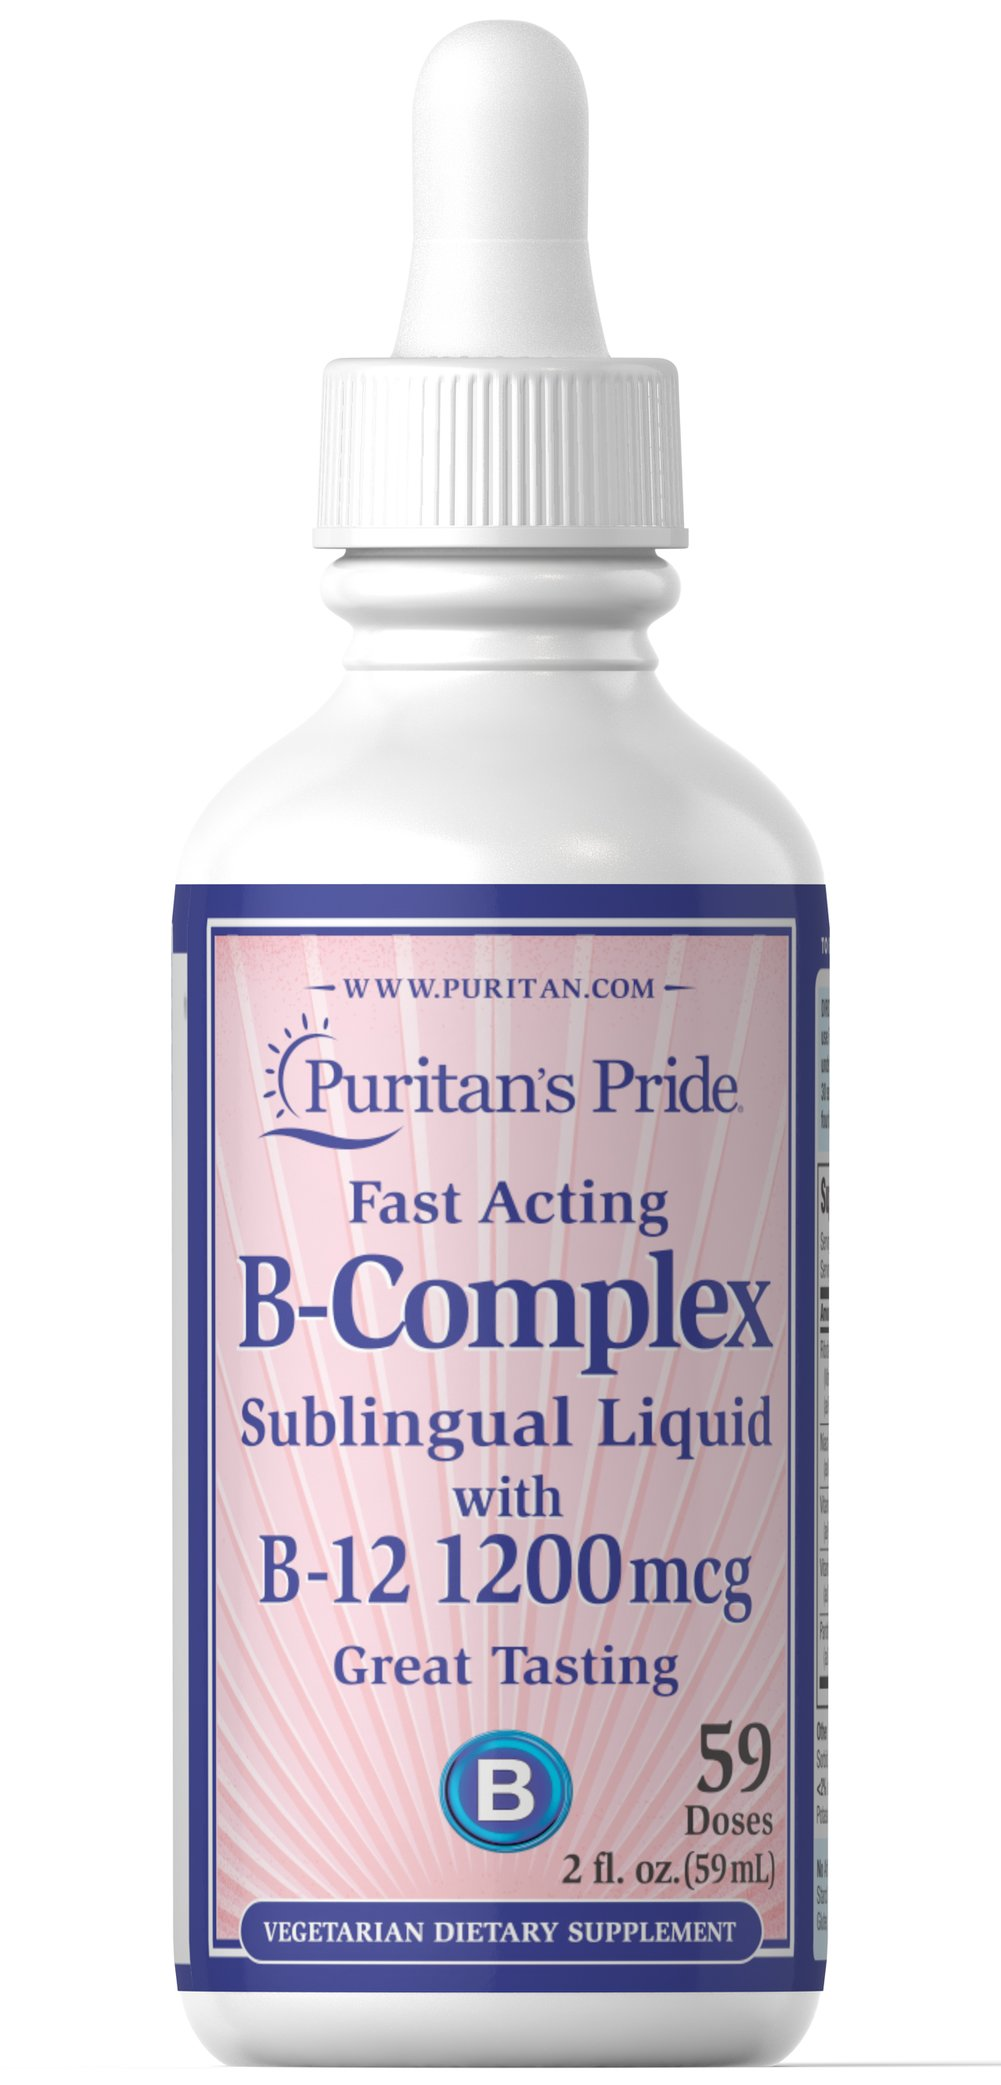 Vitamin B-Complex Sublingual Liquid with Vitamin B-12  2 fl oz Liquid  $7.79